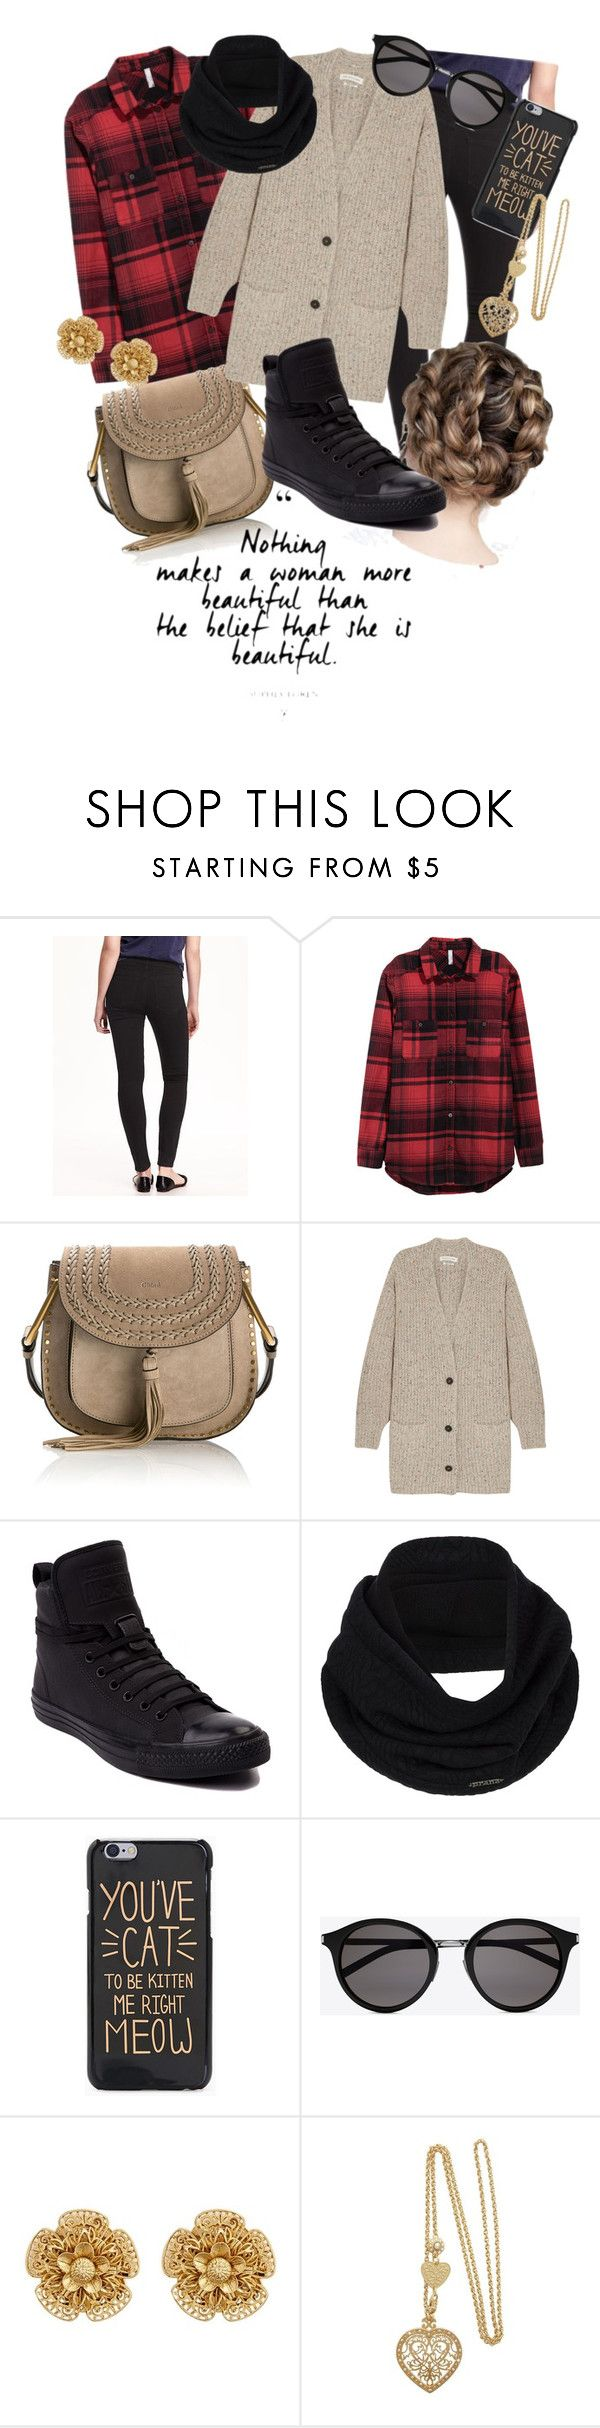 """Fall-in-Love with Cozies"" by fashion-mama-aquarius on Polyvore featuring Chloé, Étoile Isabel Marant, Converse, prAna, Yves Saint Laurent and Miriam Haskell"